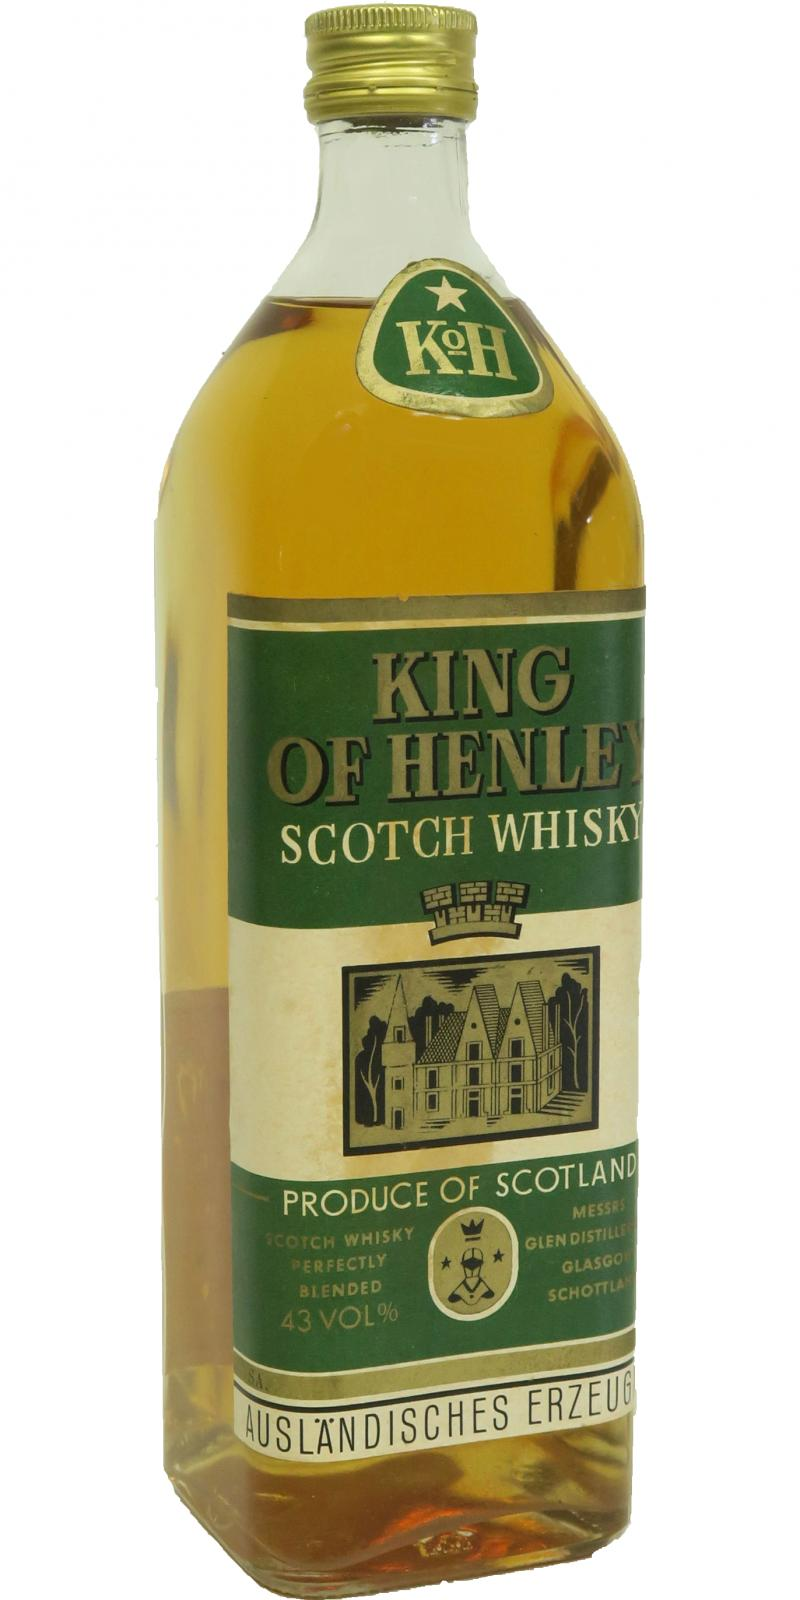 King of Henley Scotch Whisky